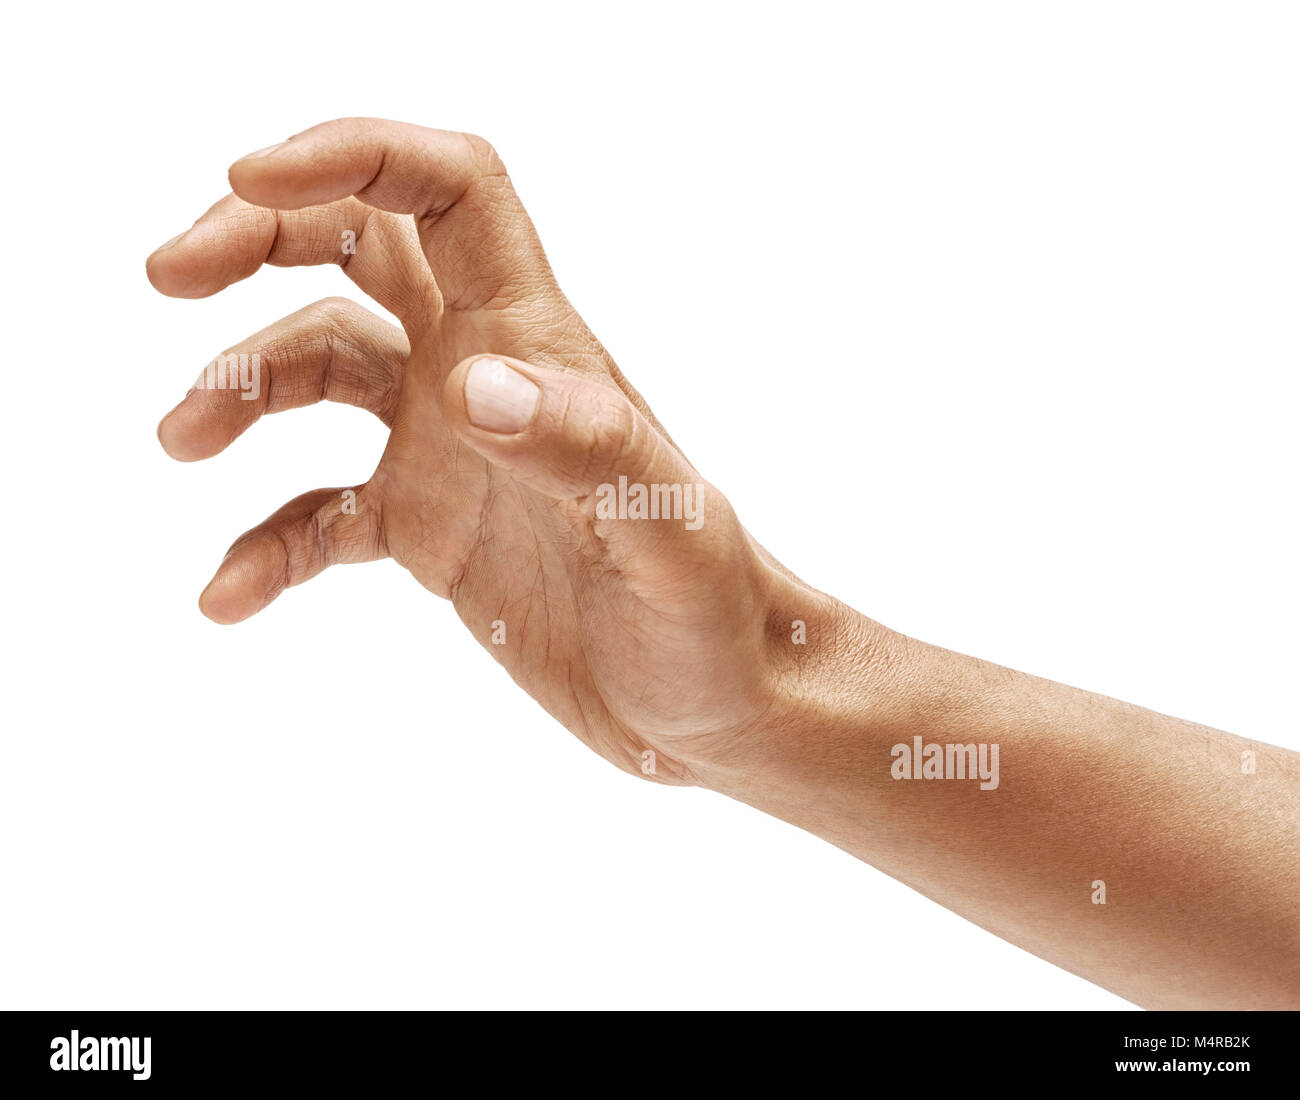 grabbing hand gesture isolated stock photos grabbing hand gesture